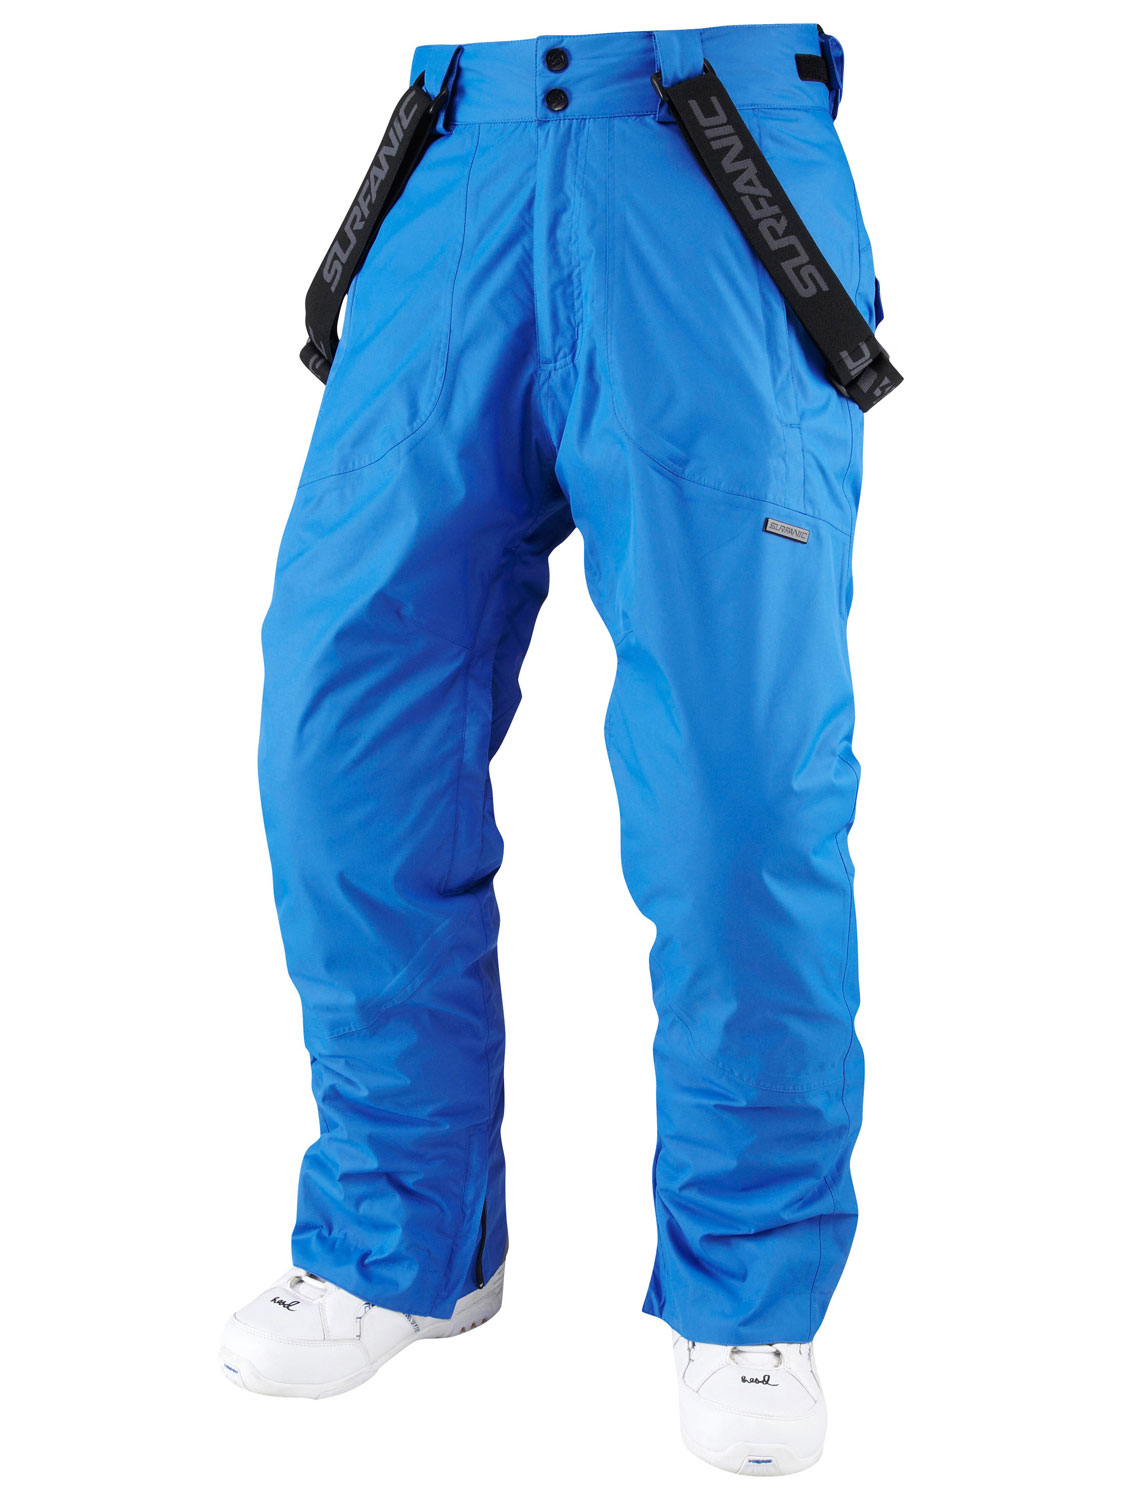 Shop for ski pants online at Target. Free shipping on purchases over $35 and save 5% every day with your Target REDcard.